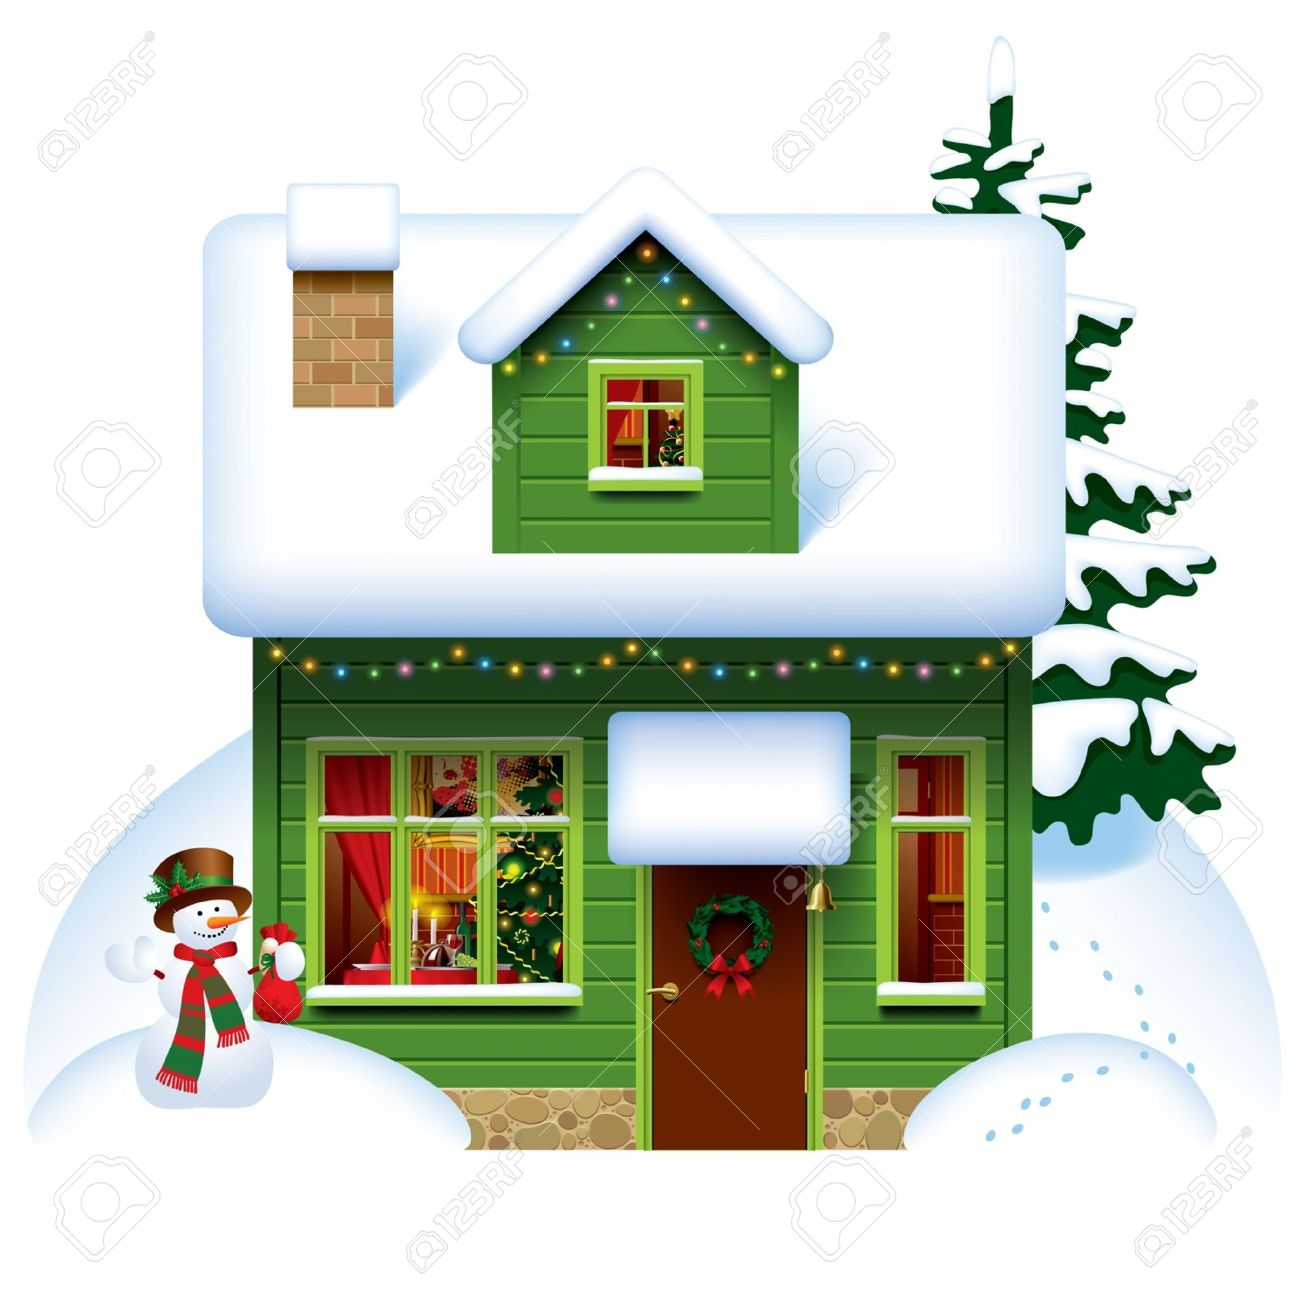 Christmas house with snow art - Vector Image Of The Green Wooden Christmas House Covered With Snow With Snowman And Spruce Stock